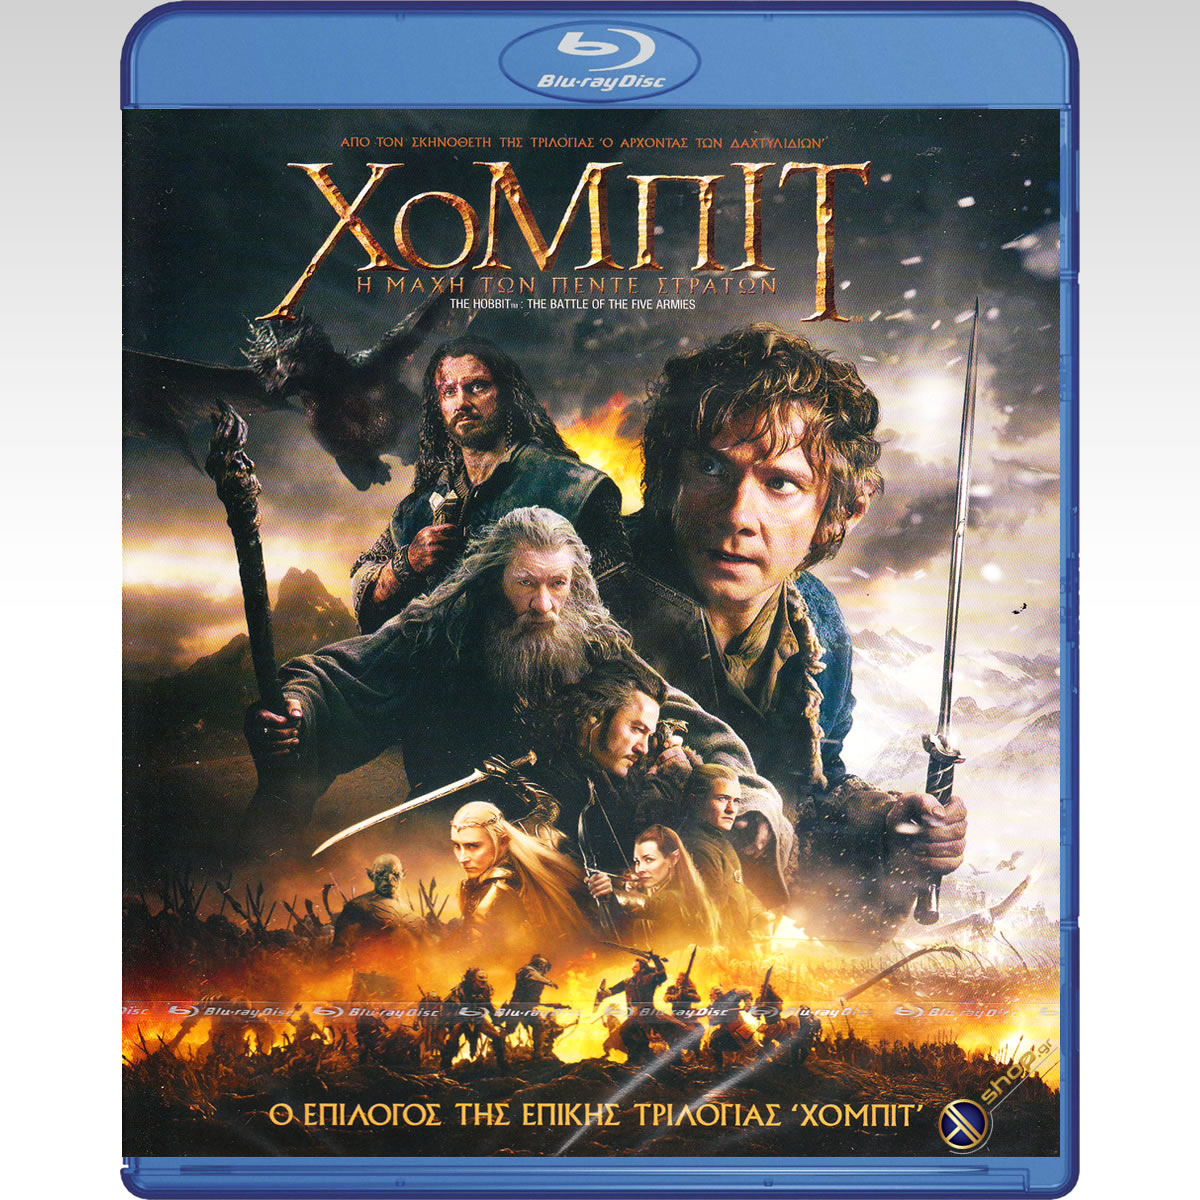 THE HOBBIT: THE BATTLE OF THE FIVE ARMIES 2-Disc Special Edition - ΧΟΜΠΙΤ: Η ΜΑΧΗ ΤΩΝ ΠΕΝΤΕ ΣΤΡΑΤΩΝ 2-Disc Ειδική Έκδοση (2 BLU-RAYs)